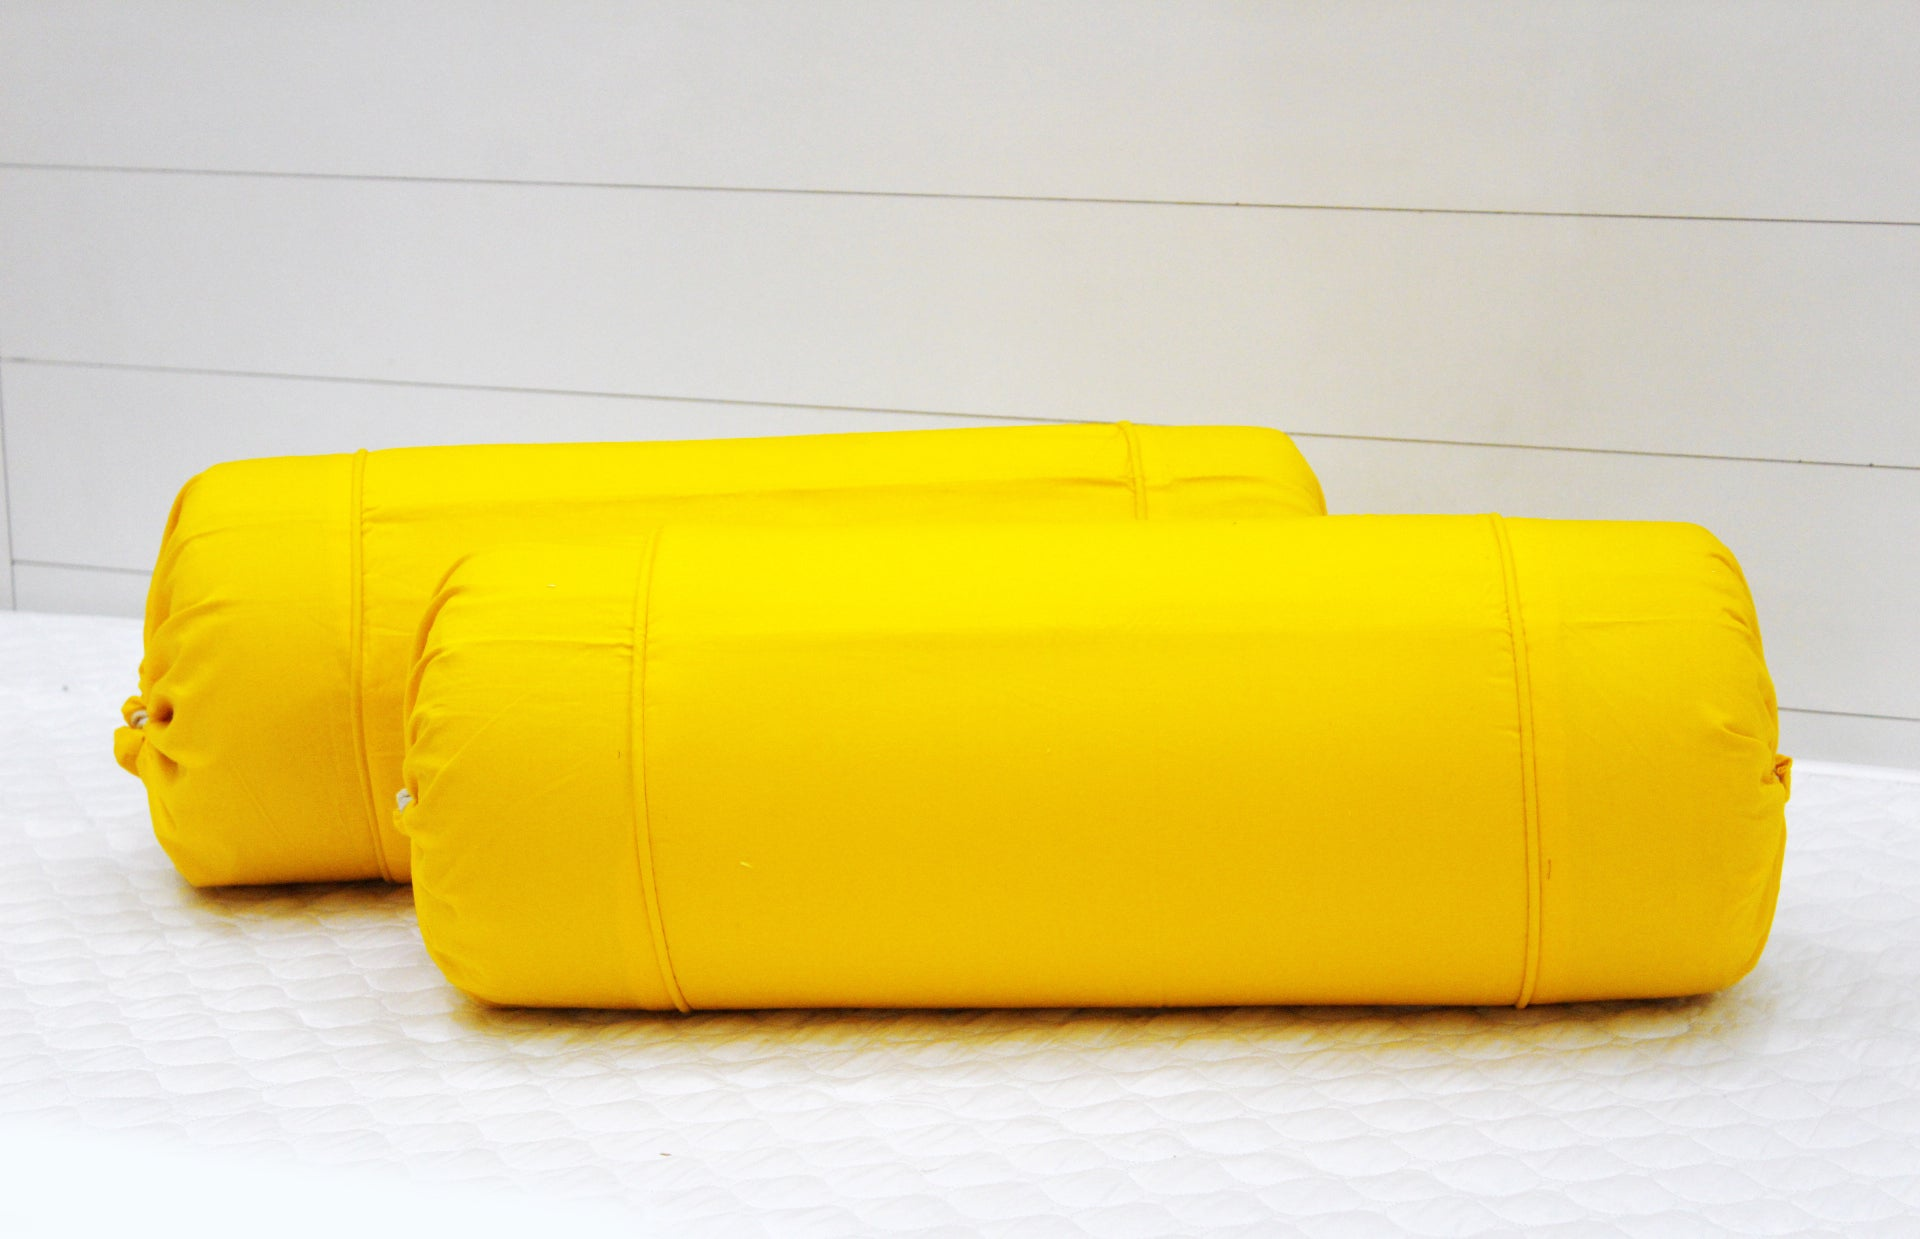 AURAVE Excel Cotton 2 Pieces Plain Bolster Cover Set - 15 X 30 inches, Yellow